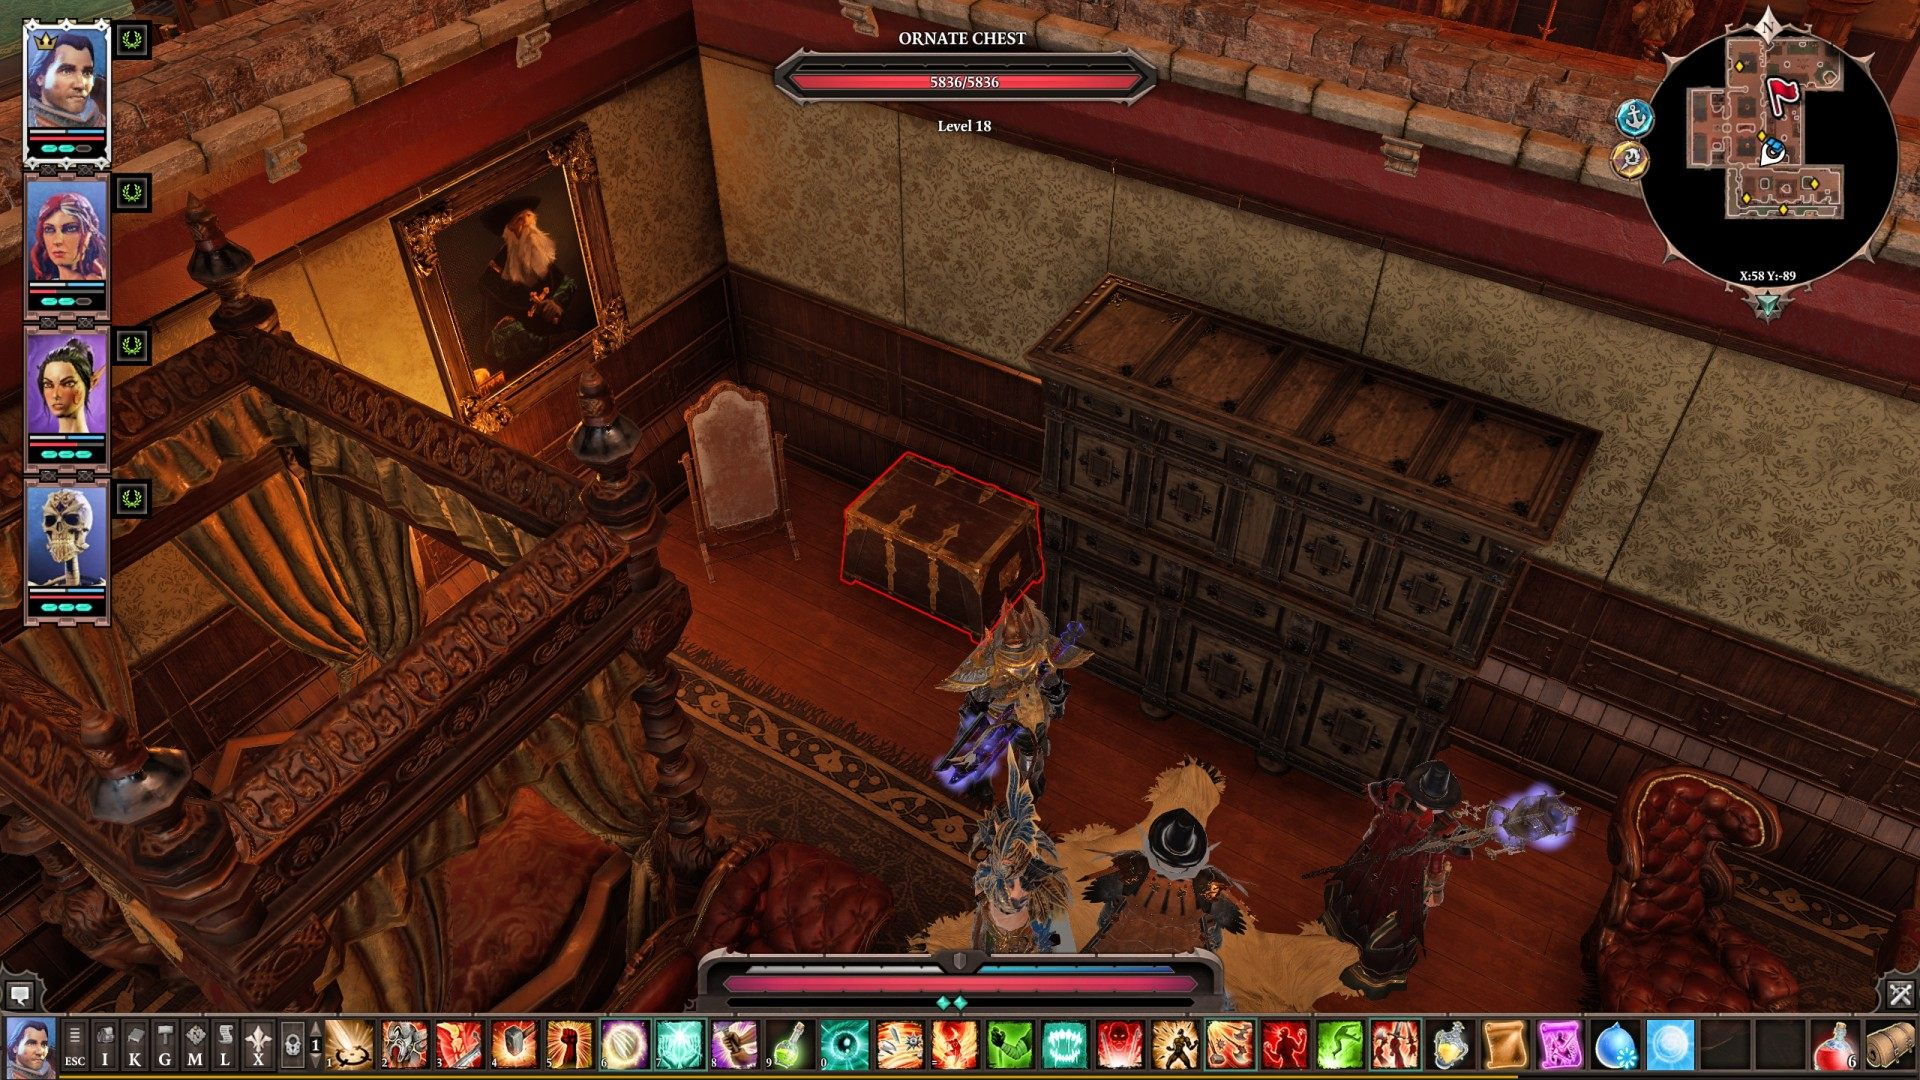 Chests, Arx, Divinity: Original Sin 2 Points of interest